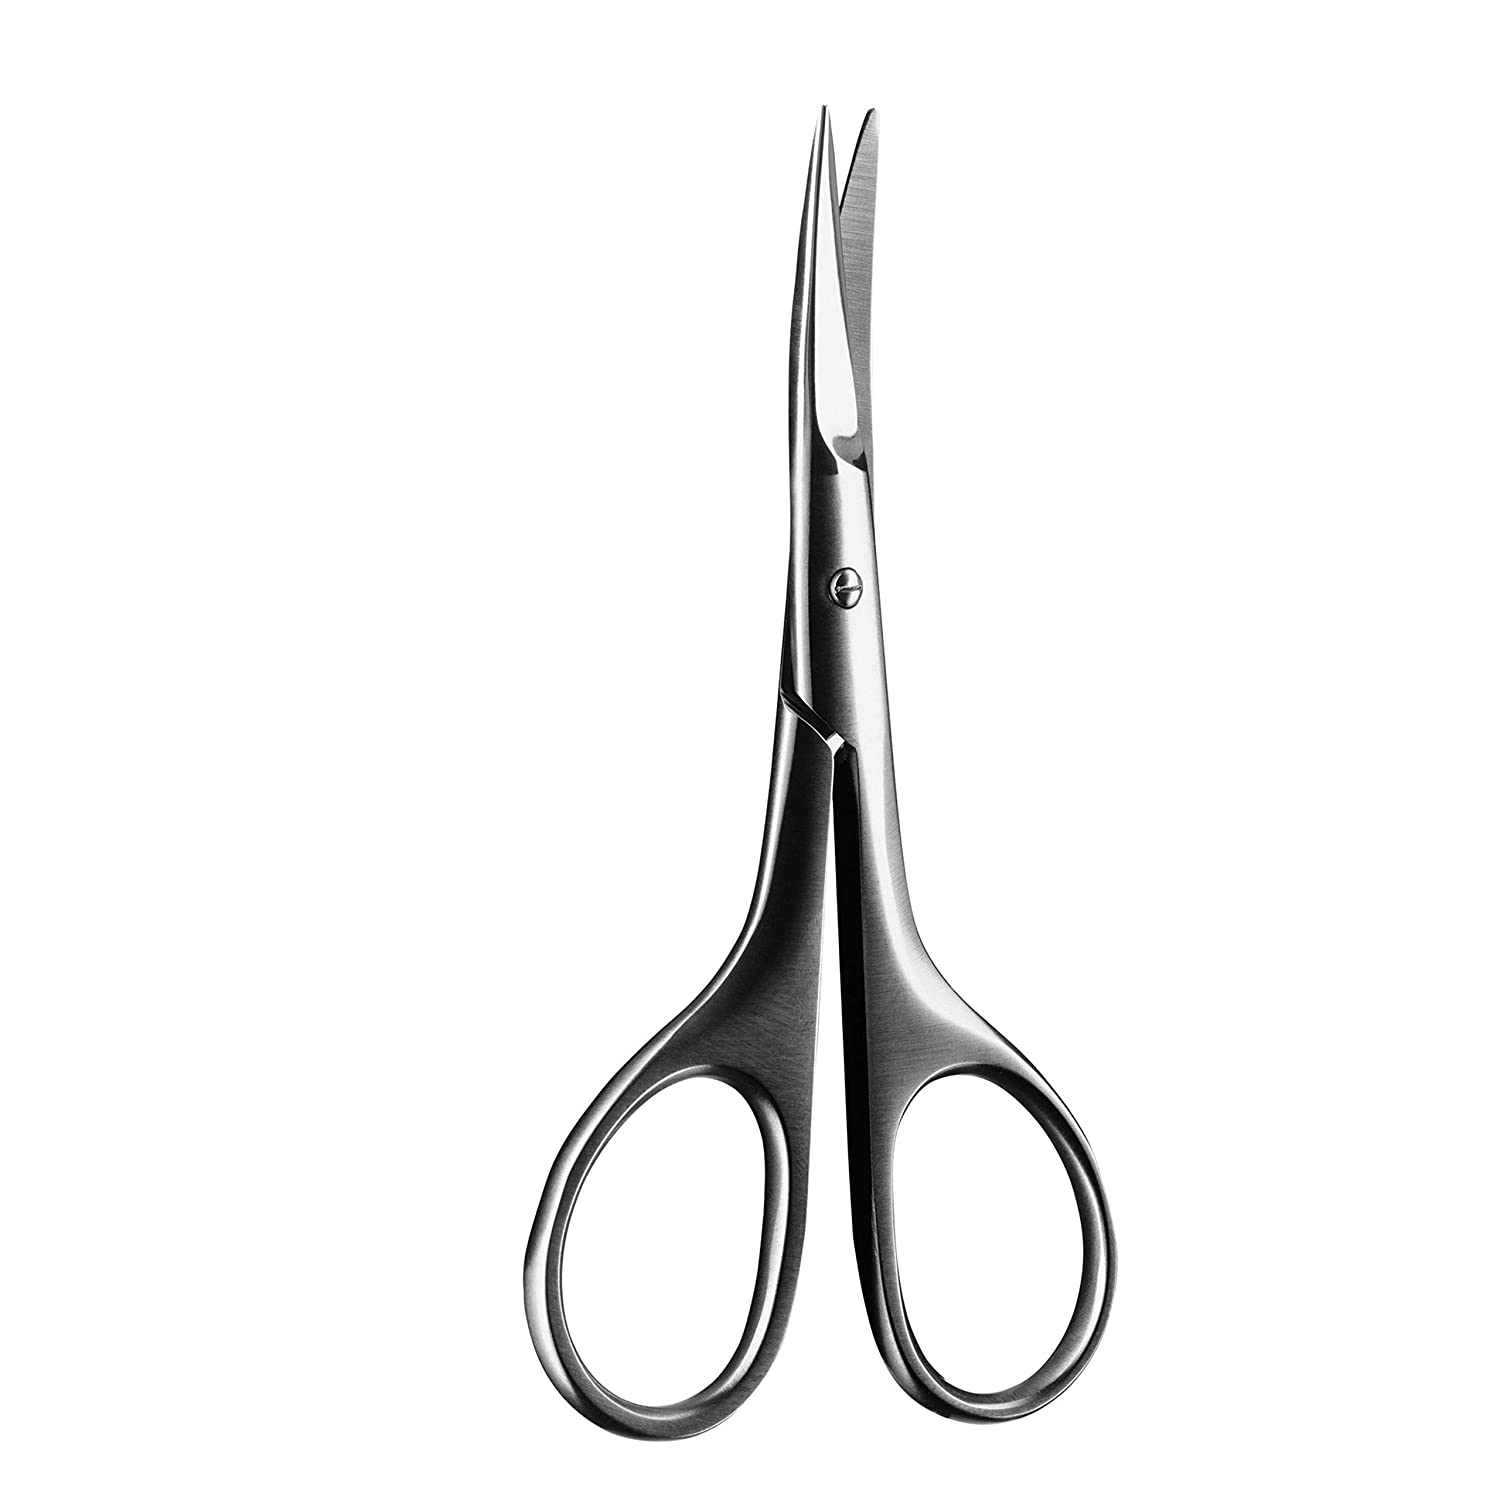 Sally Hansen Finest Fingernails Nail & Cuticle Scissors 1 ea: Beauty